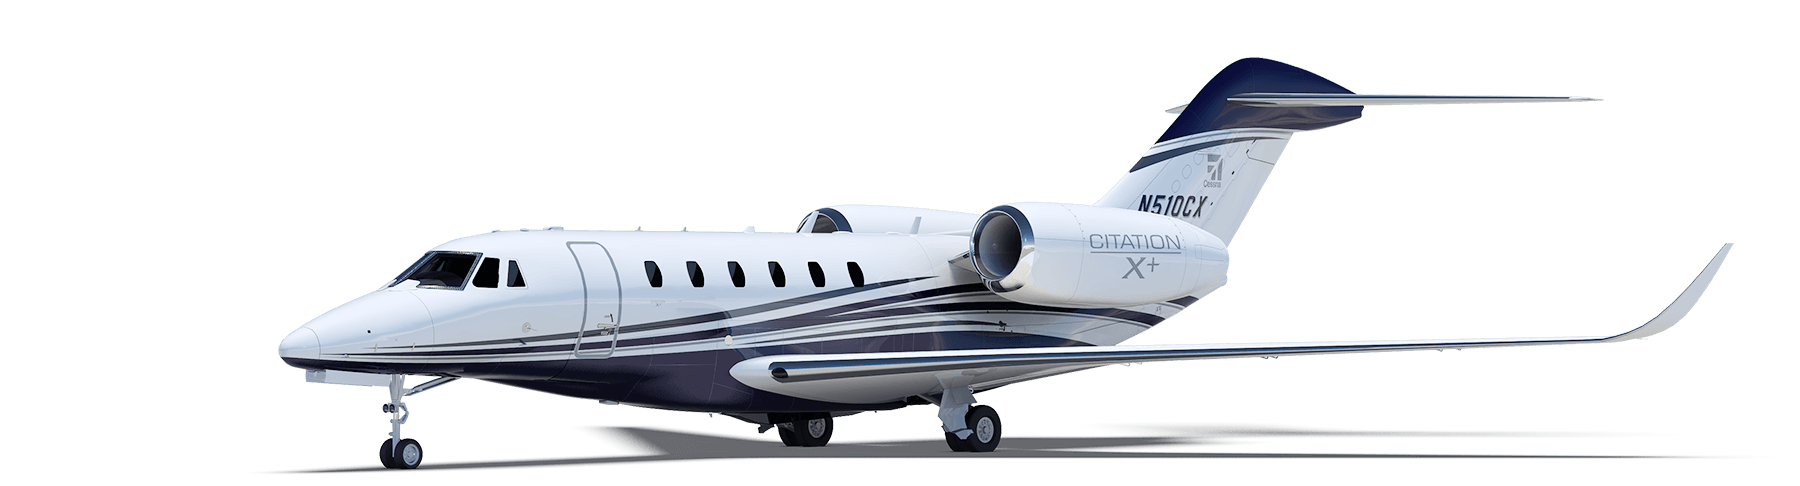 Black And Silver Wallpaper Citation X